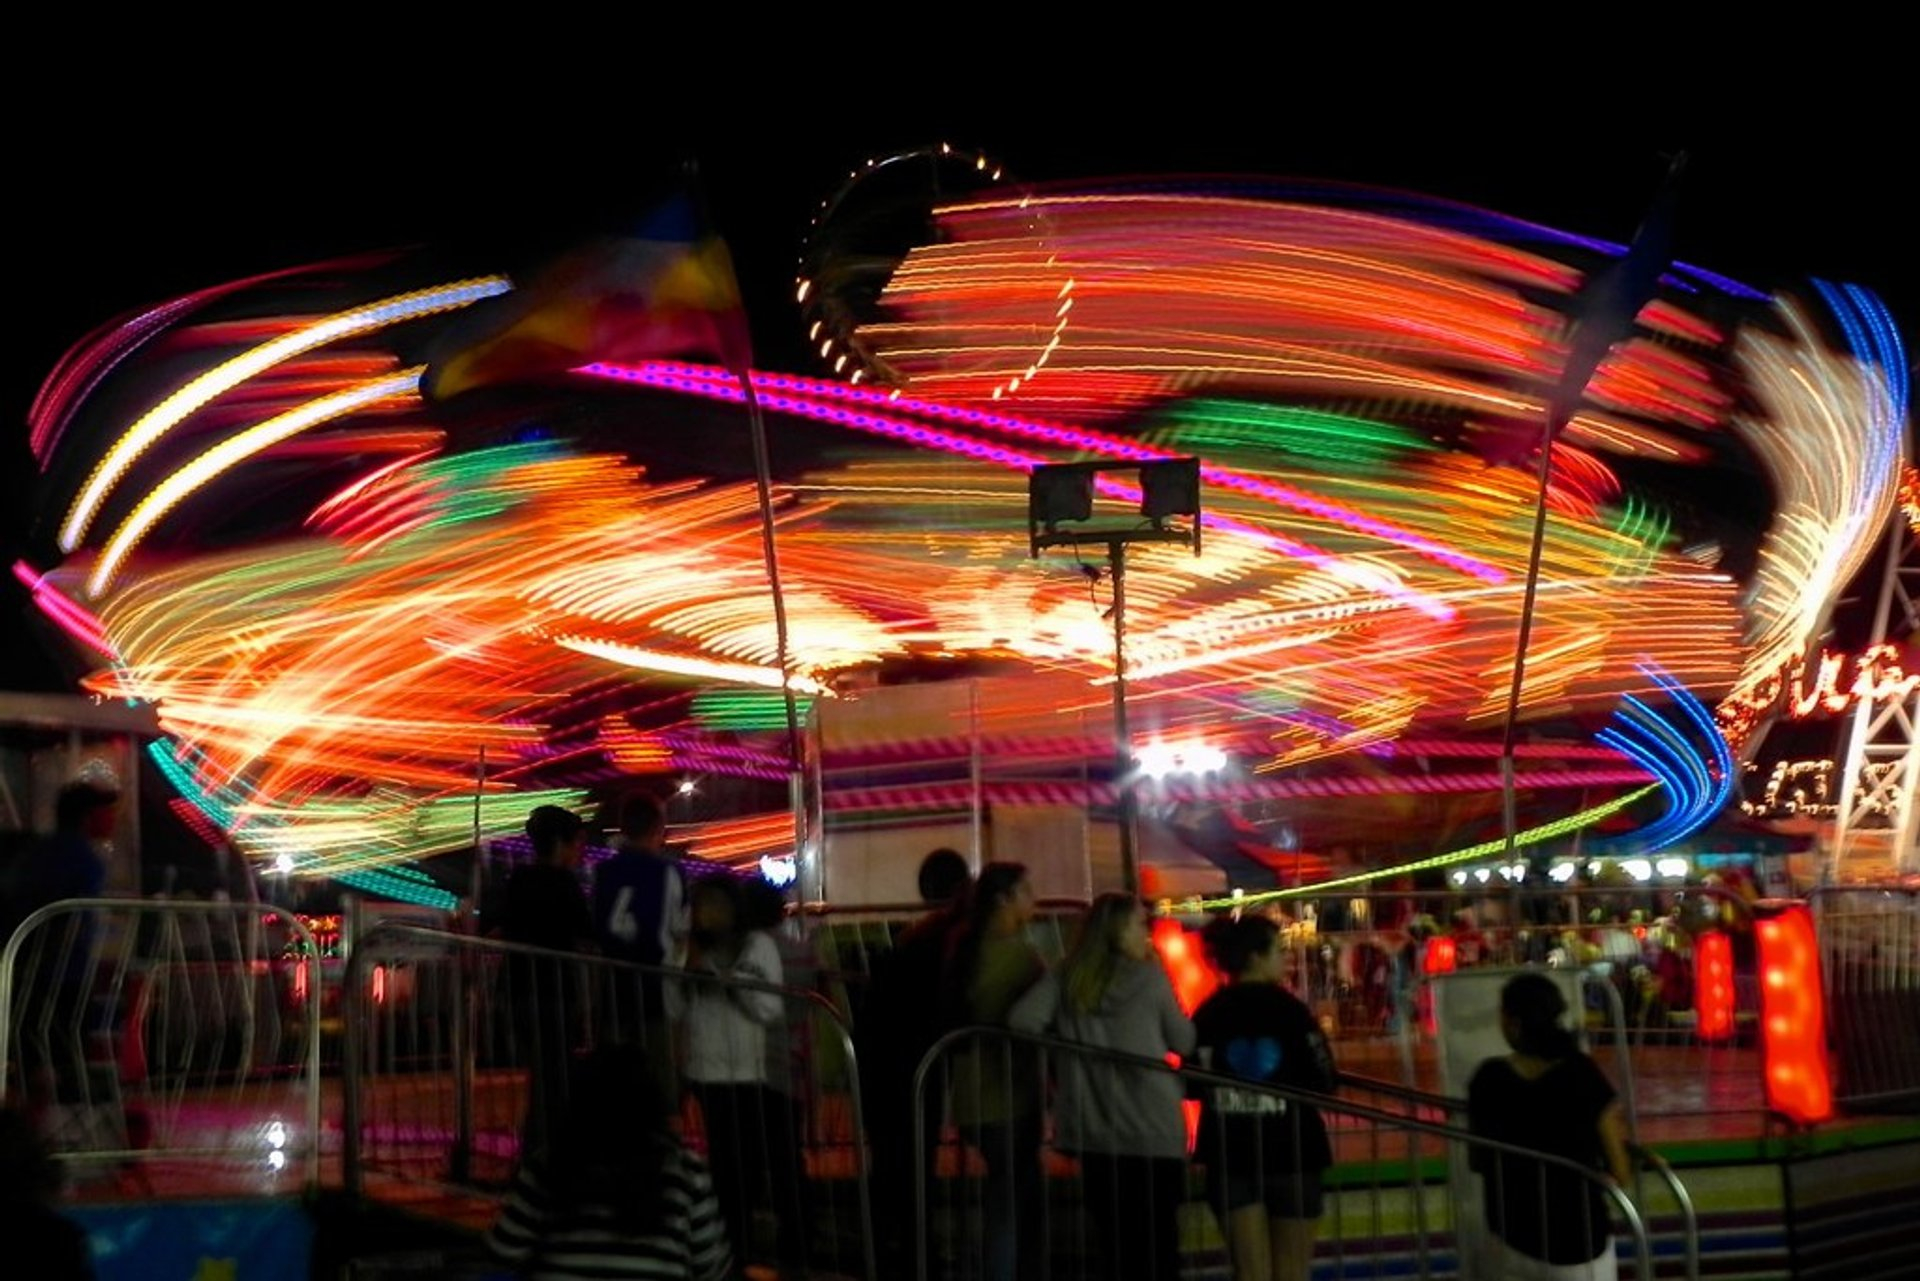 South Florida Fair 2021 - Dates & Map pertaining to South Florida Fairgrounds Events 2021